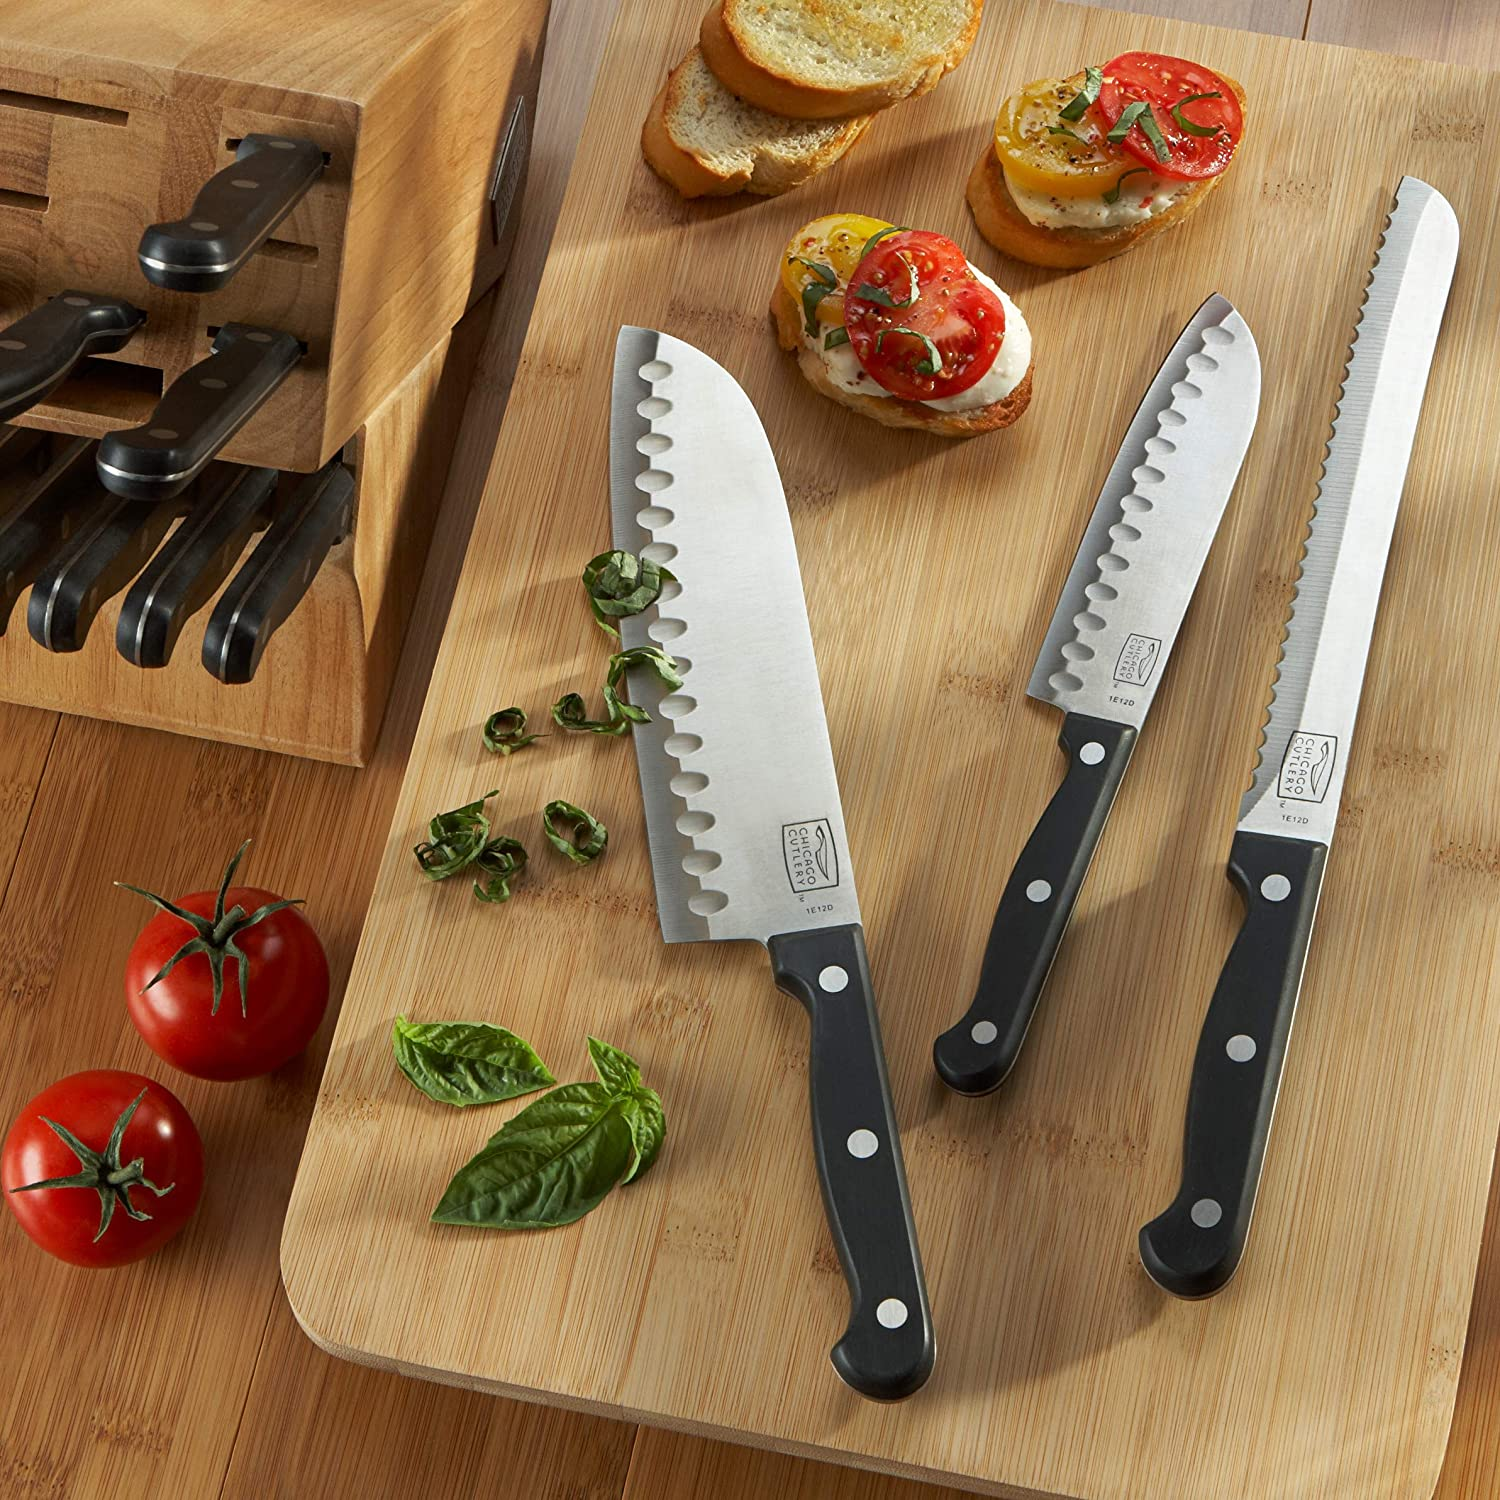 Chicago Cutlery Essentials Stainless Steel Knife Block Set